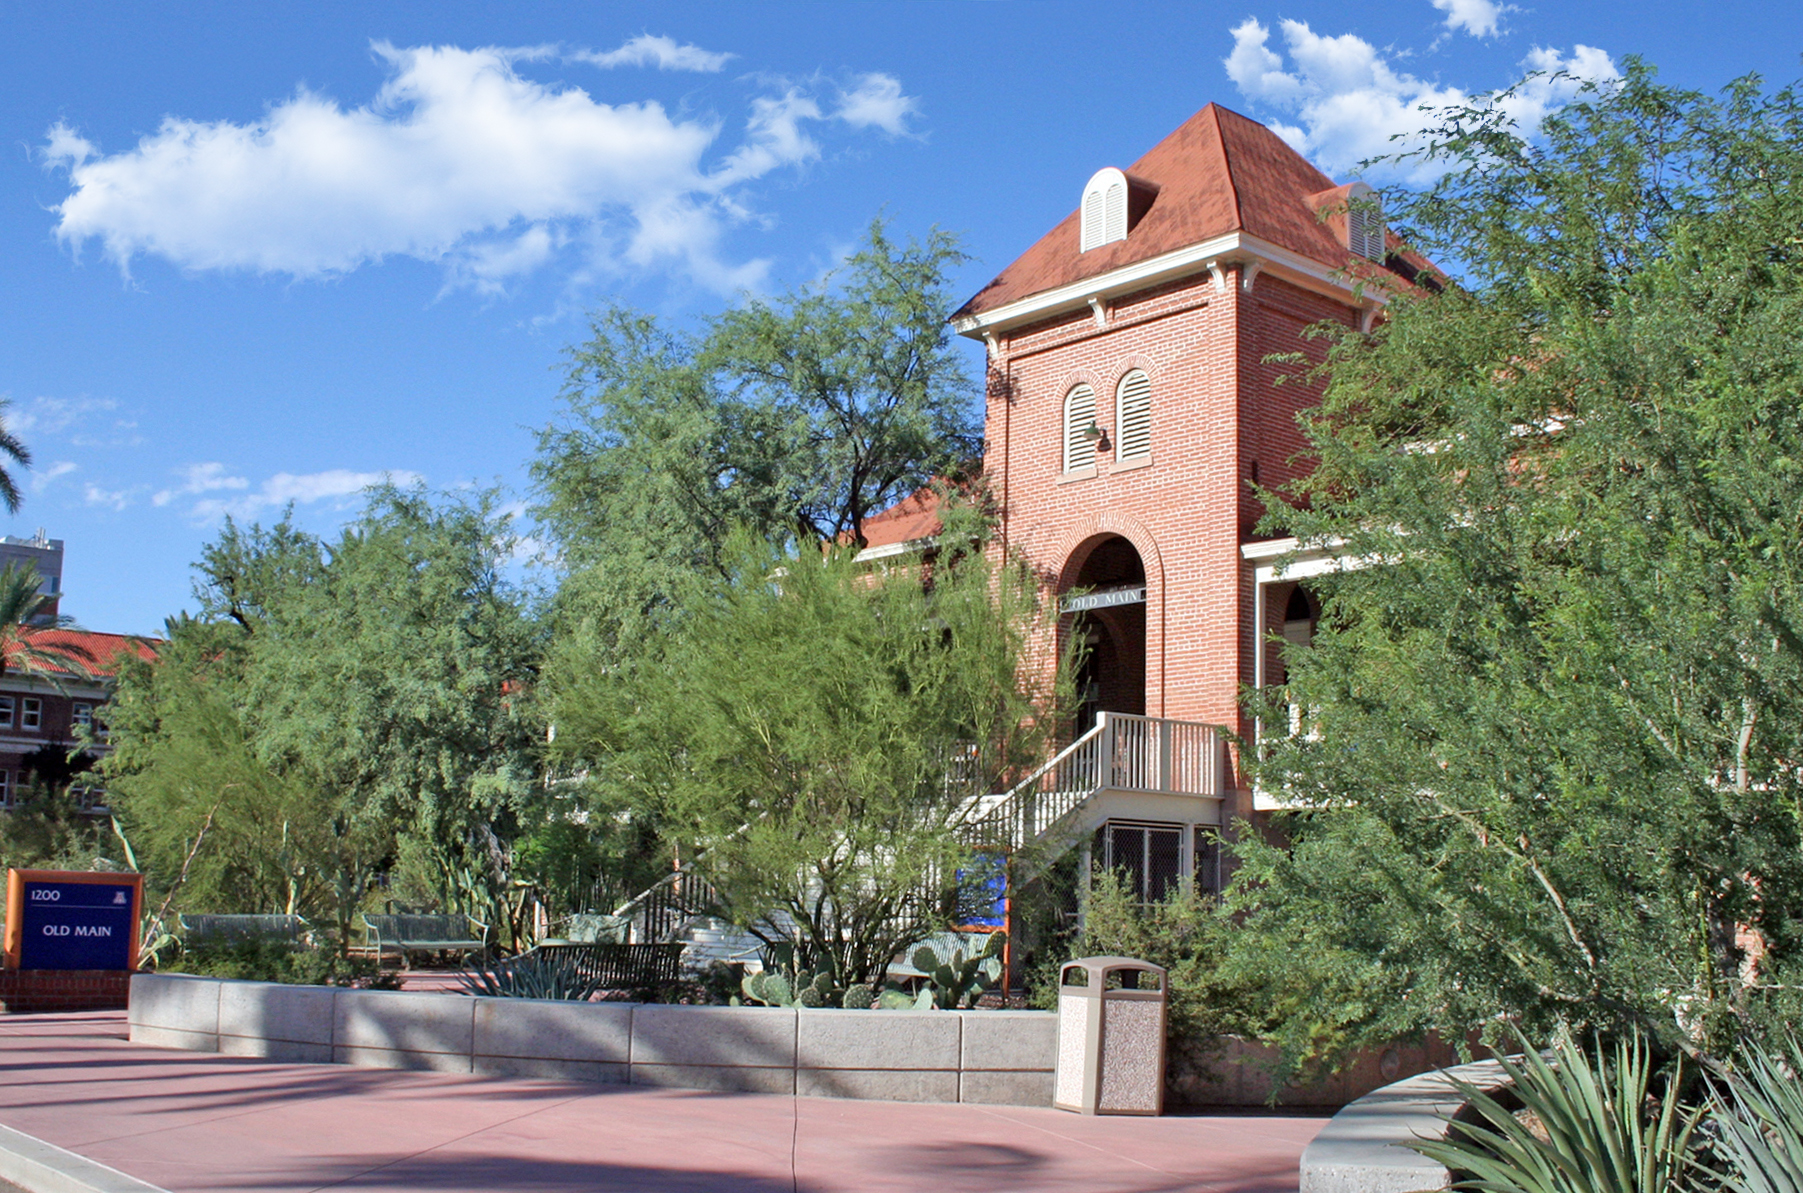 University of Arizona - Old Main